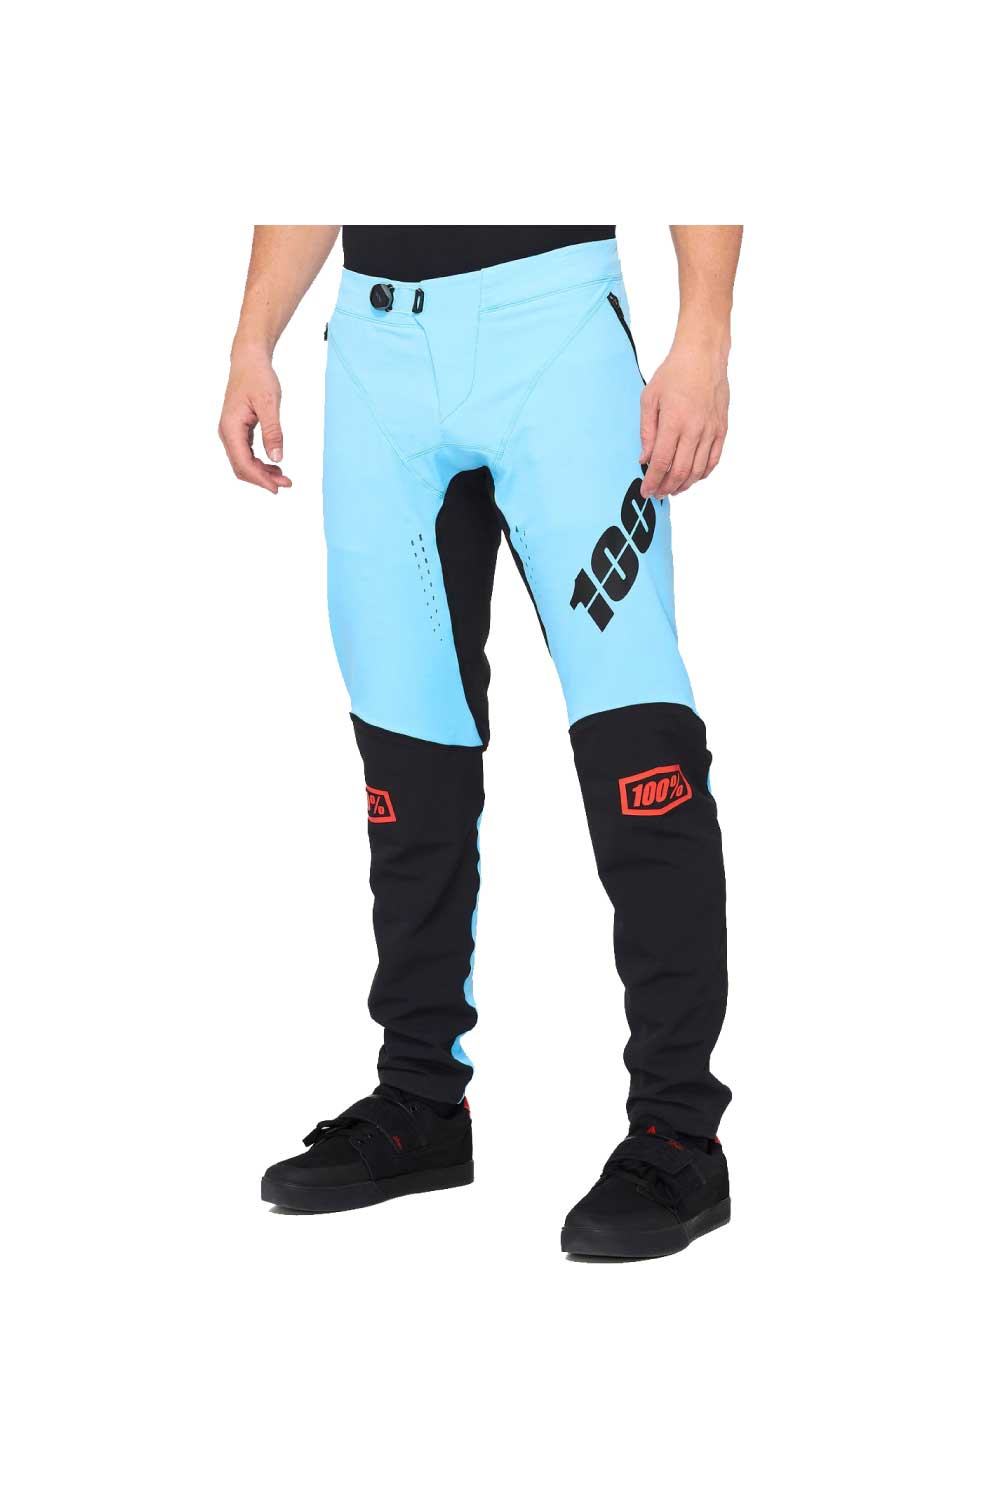 100% 2020 R-CORE X Pants Light Blue/Black